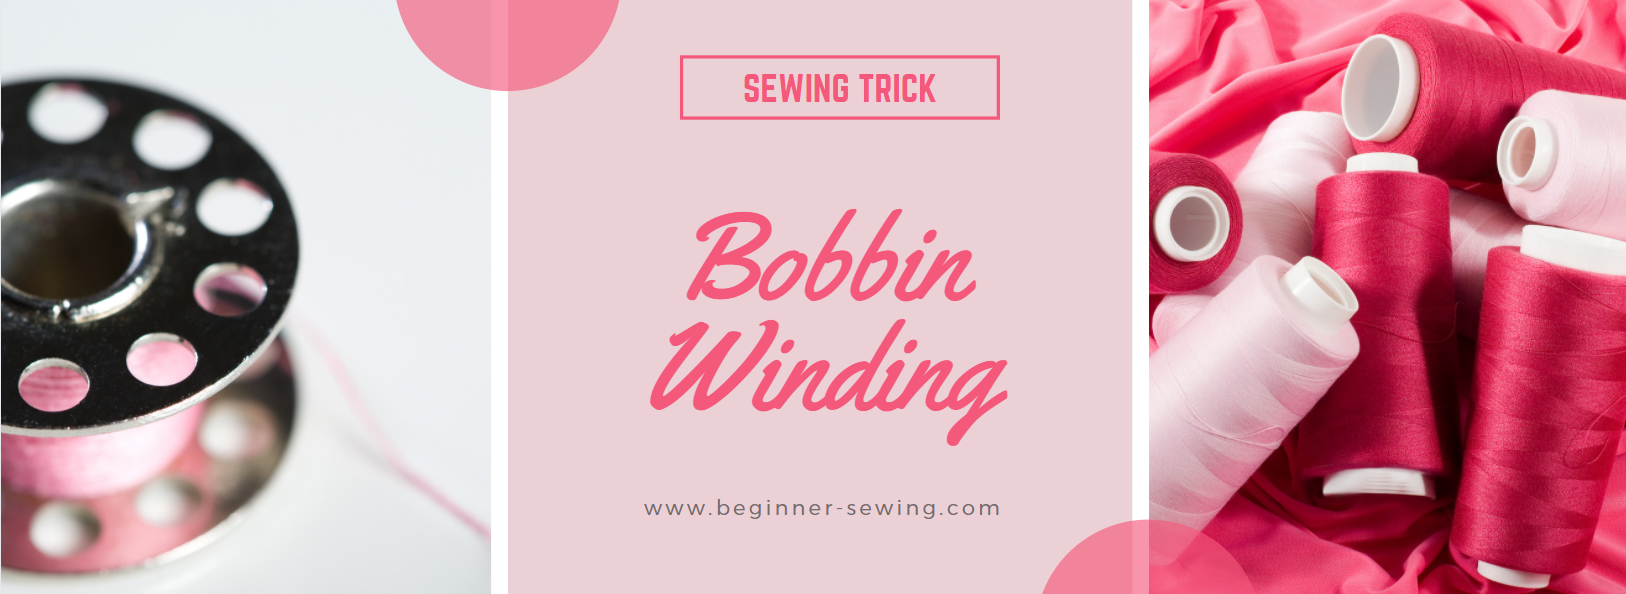 VIDEO: Bobbin Winding Sewing Trick